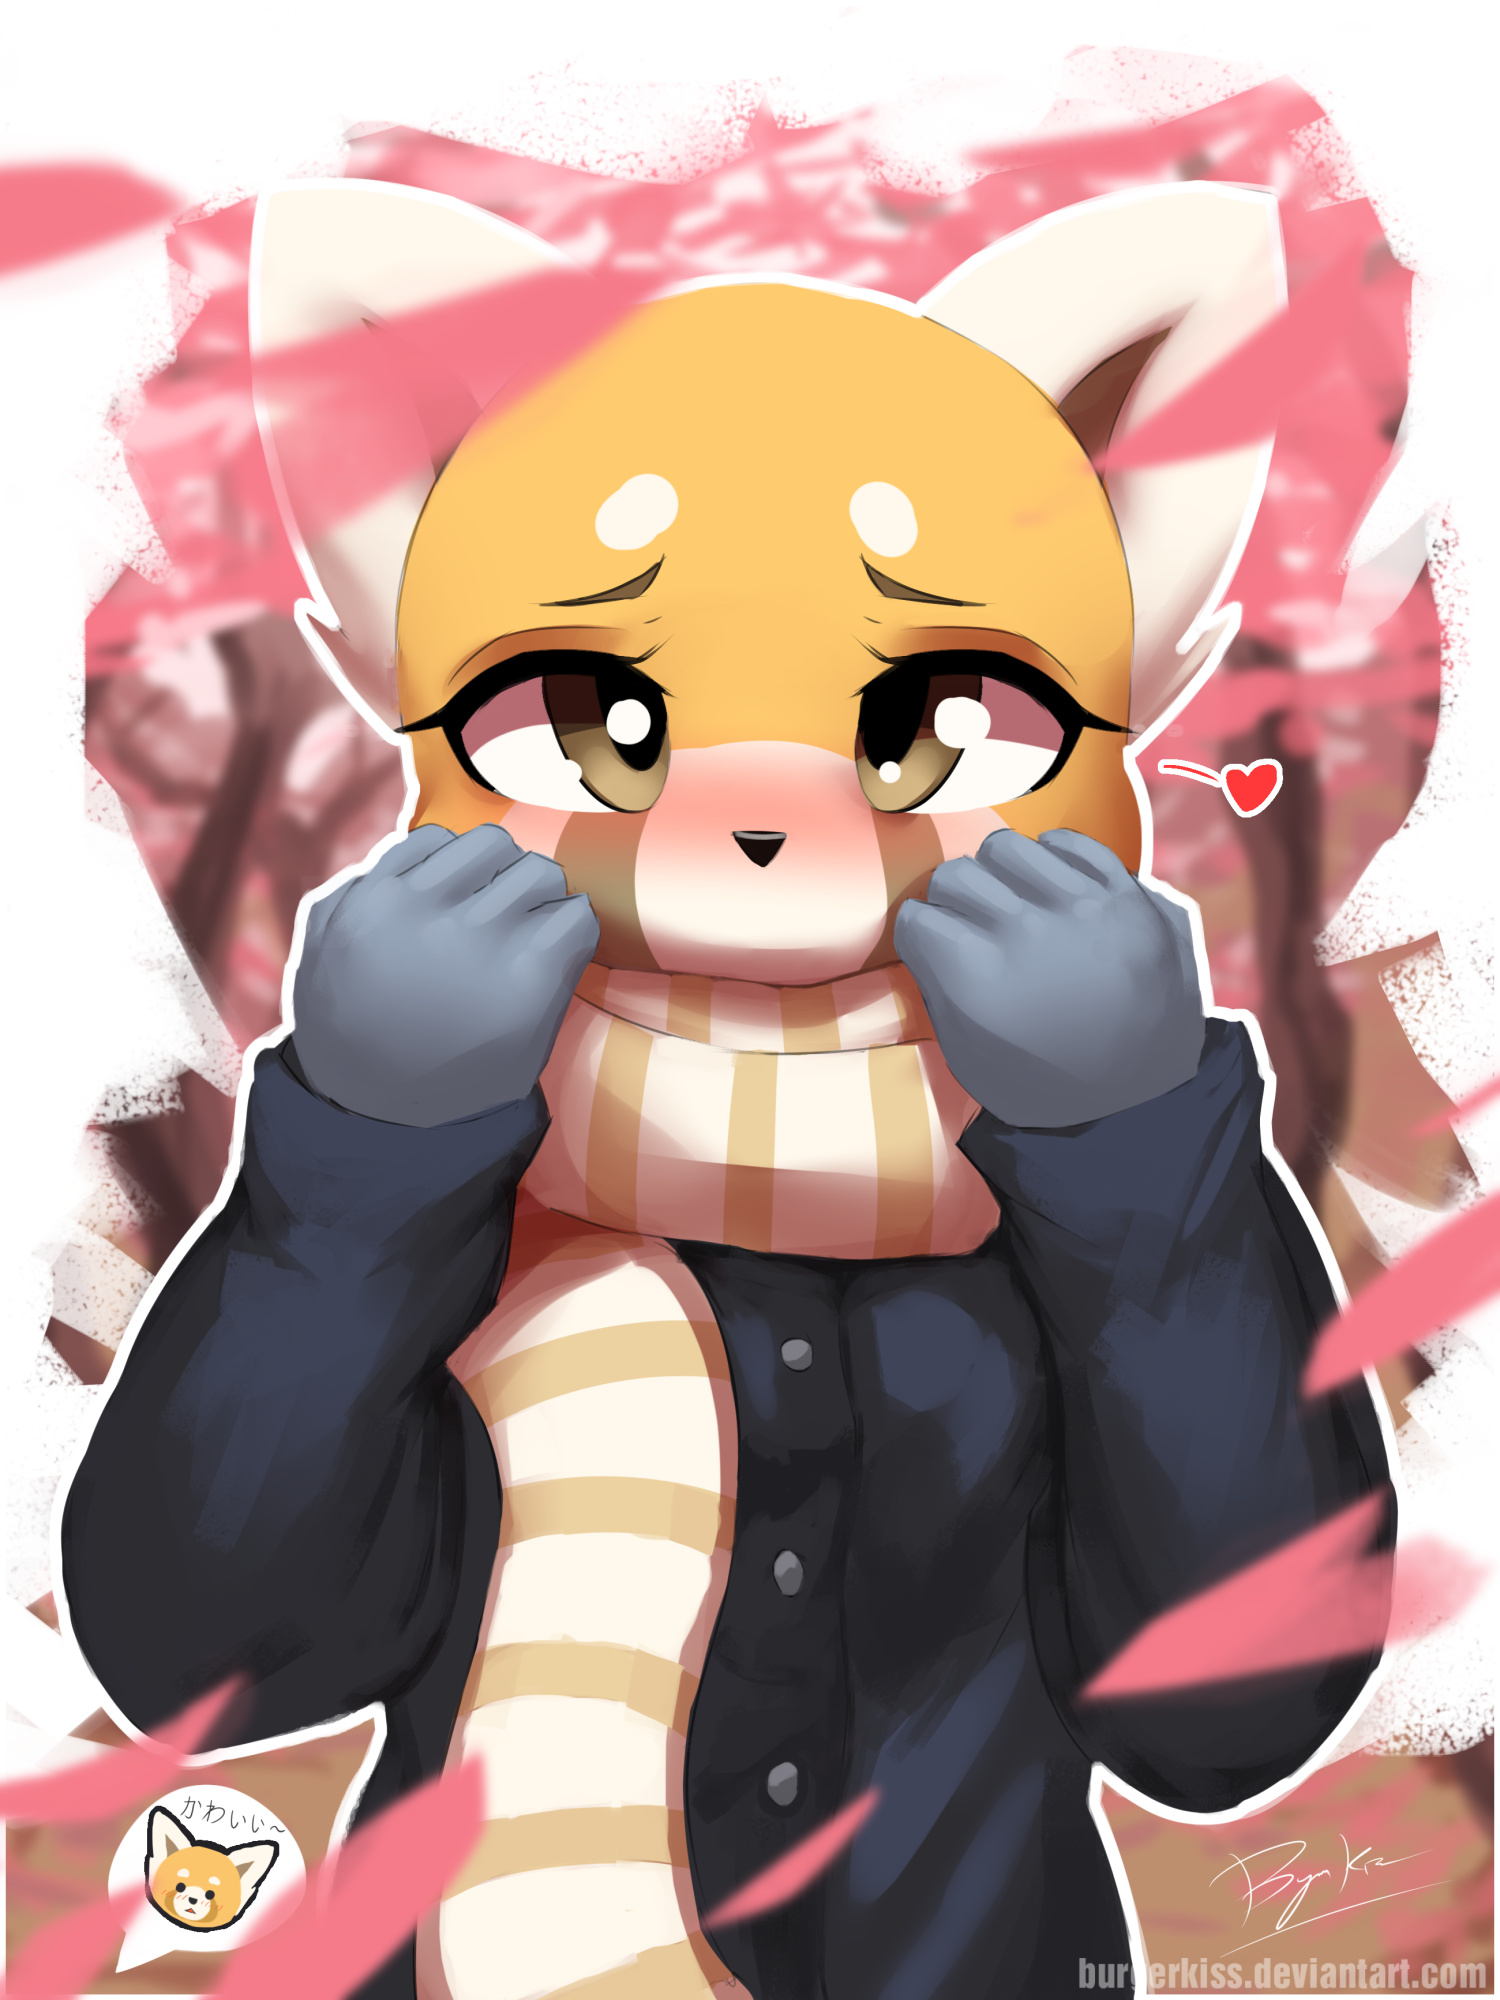 e926 2017 <3 aggressive_retsuko anthro black_nose blush burgerkiss clothed clothing female gloves hi_res looking_at_viewer mammal red_panda retsuko sanrio scarf solo